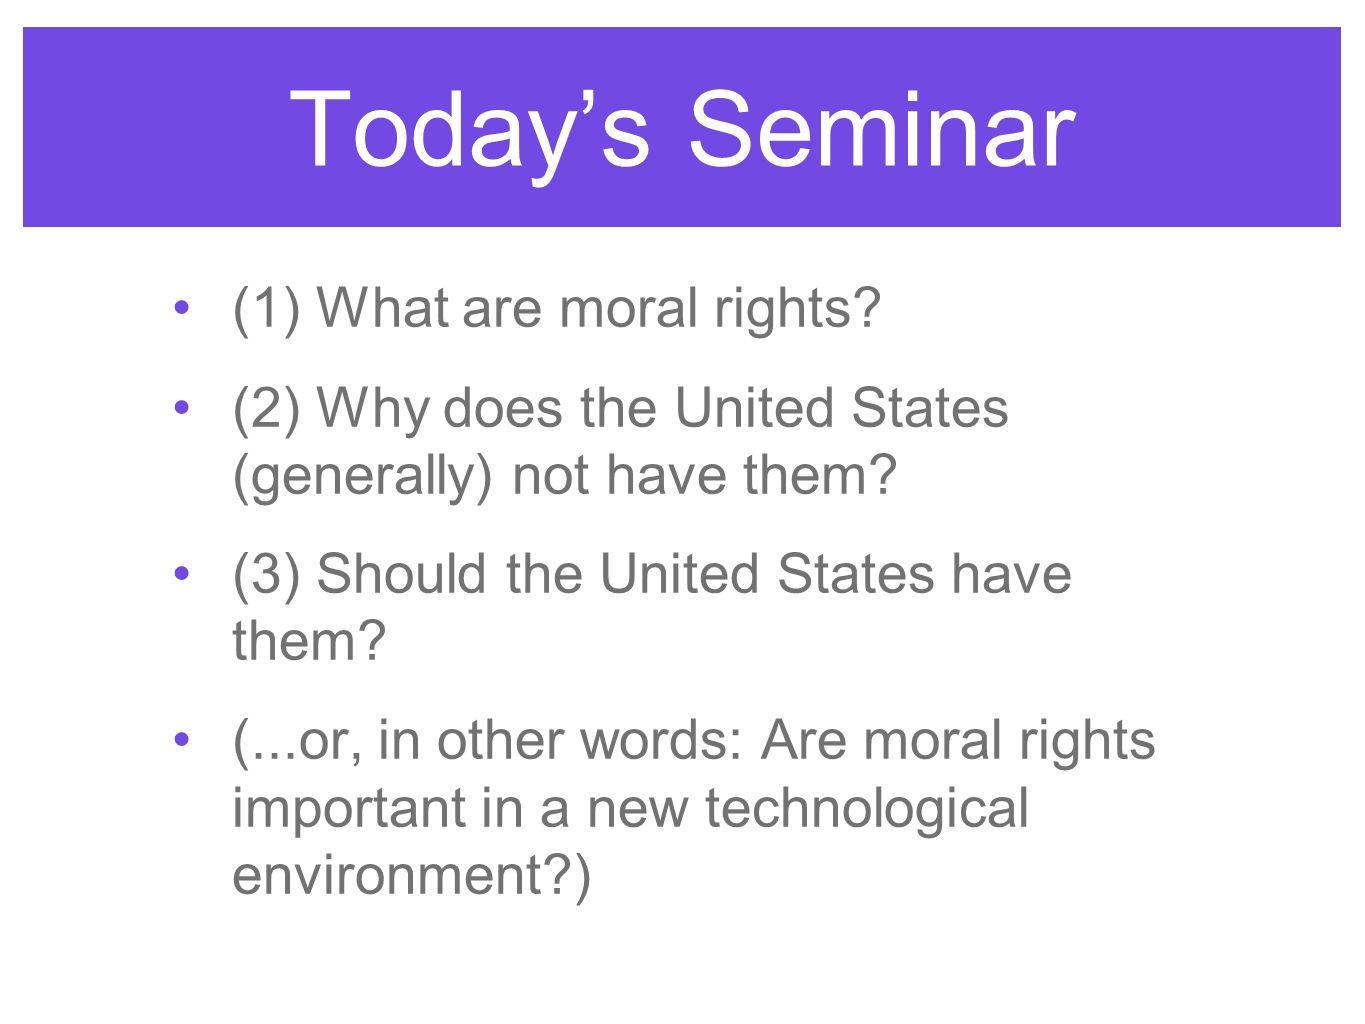 Todays Seminar (1) What are moral rights? (2) Why does the United States (generally) not have them? (3) Should the United States have them? (...or, in